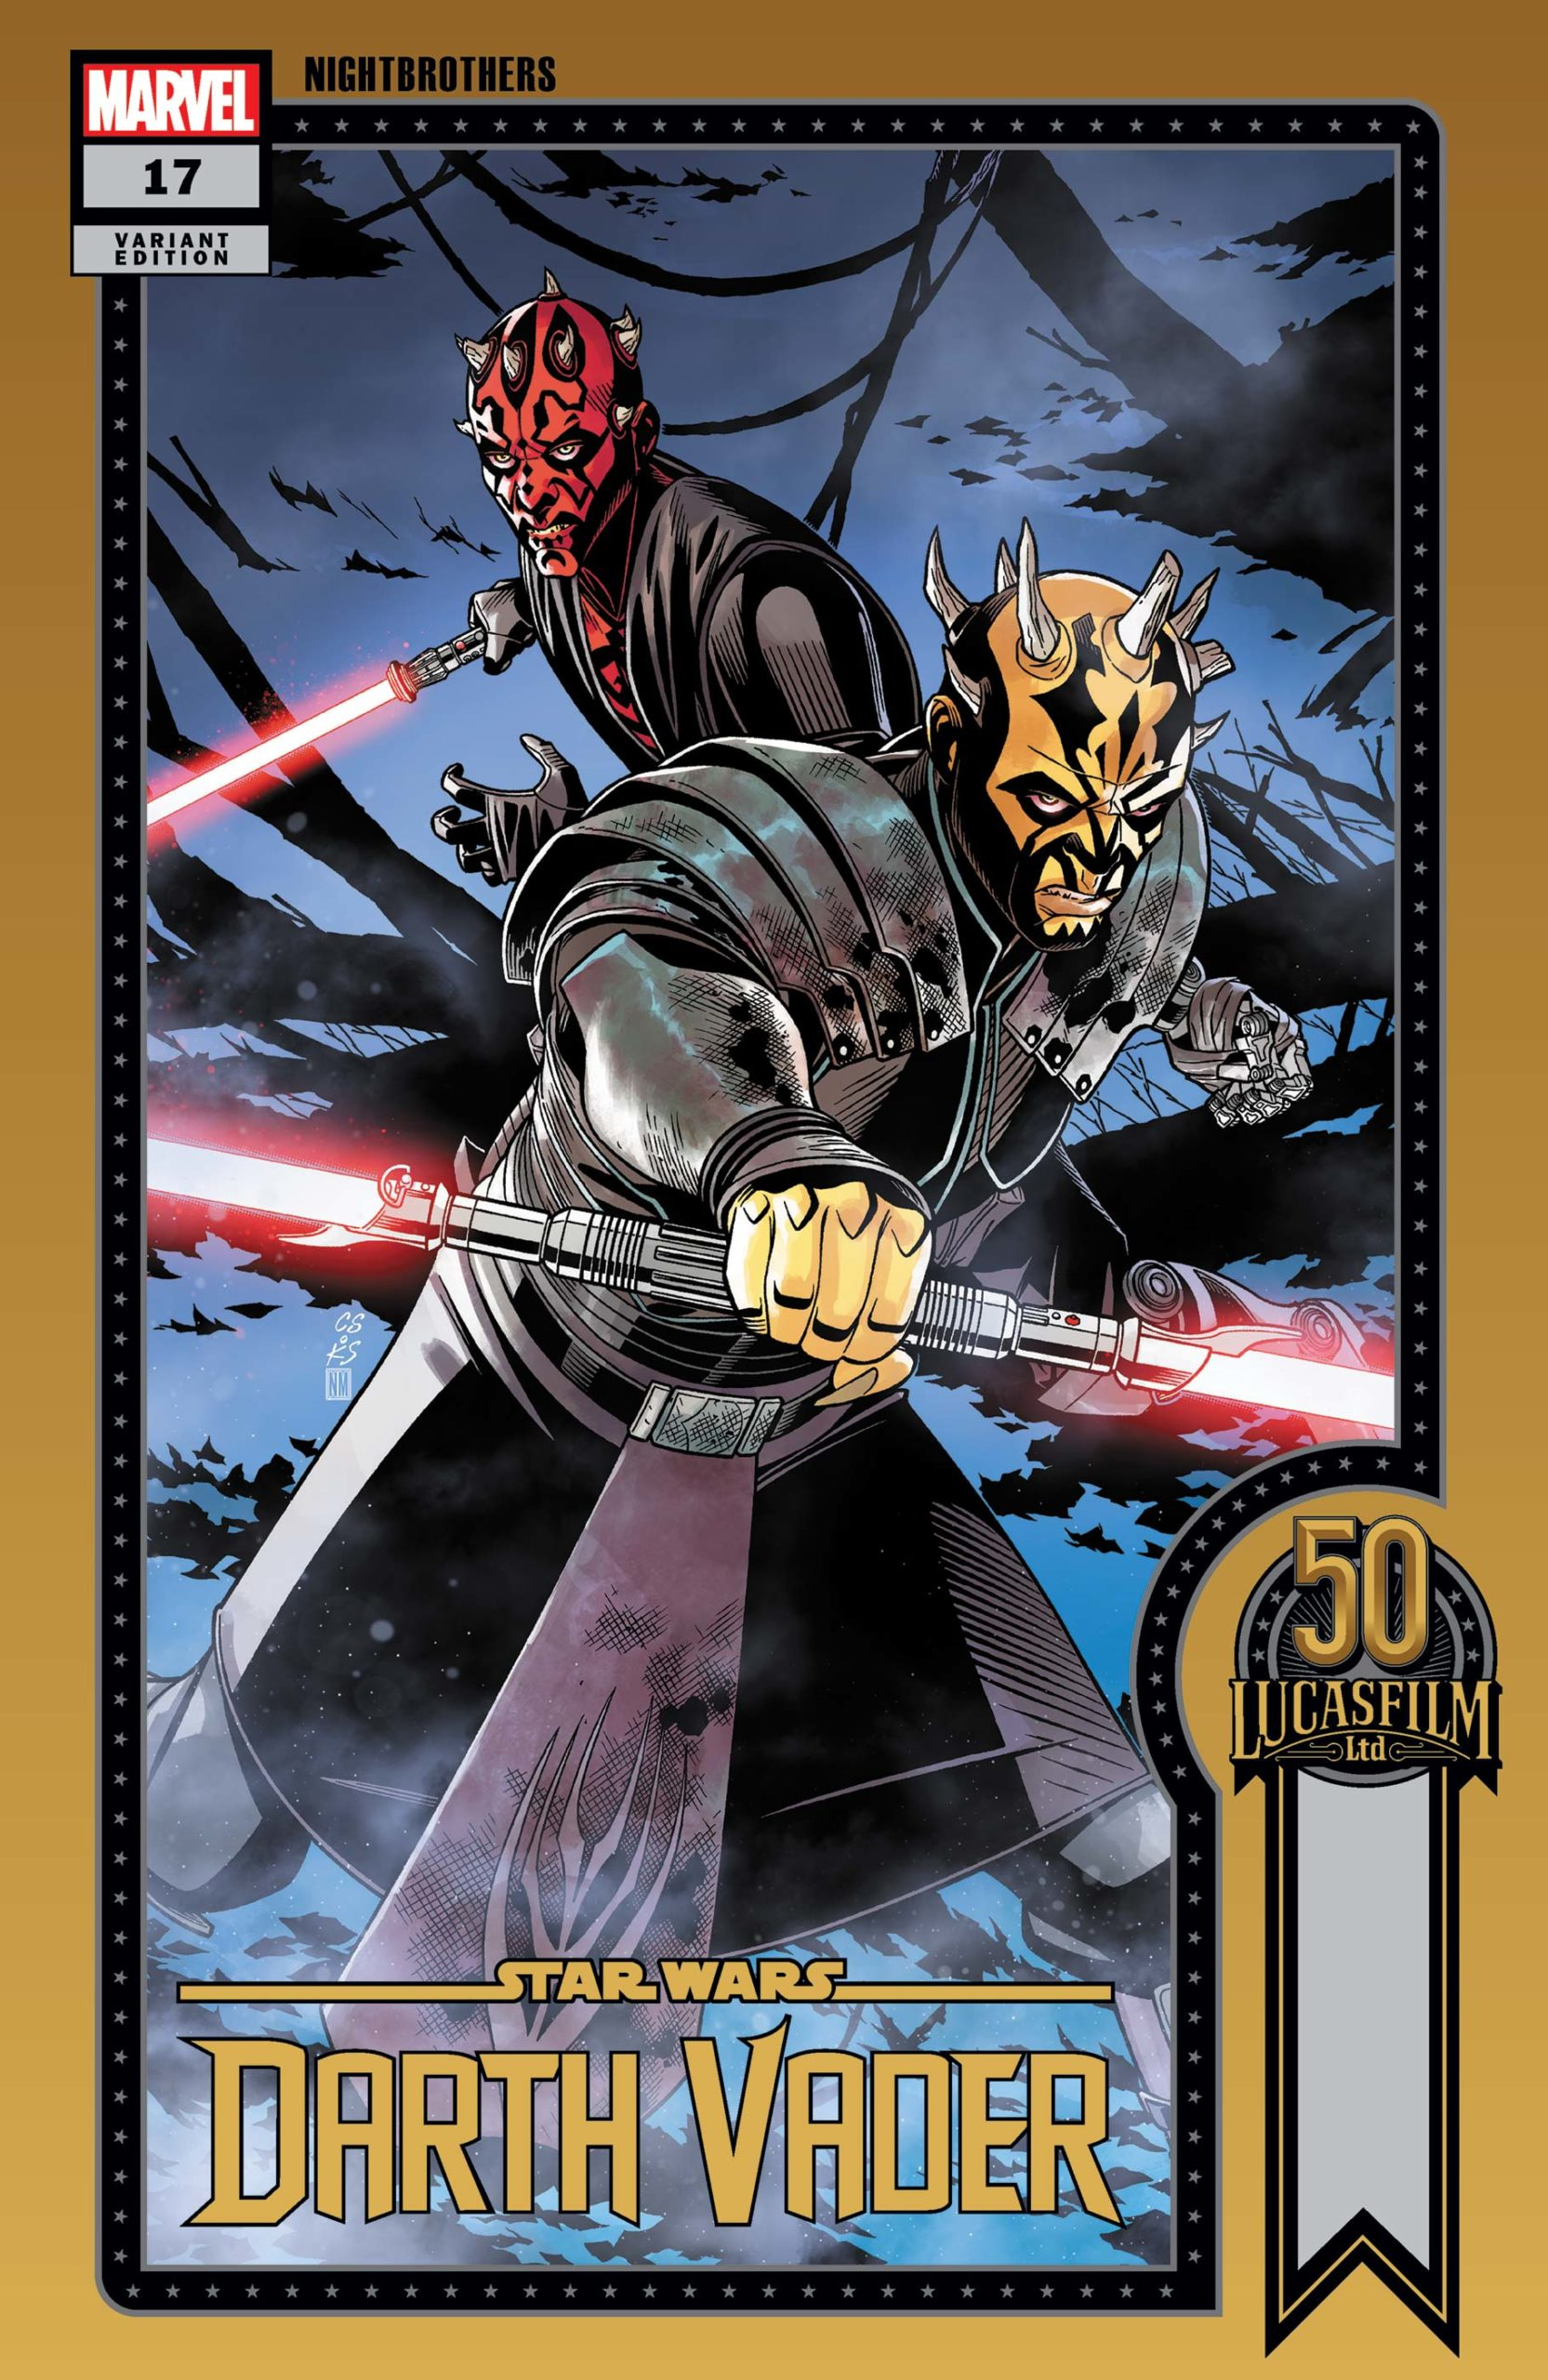 Darth Vader #17 (Chris Sprouse Lucasfilm 50th Anniversary Variant Cover) (20.10.2021)